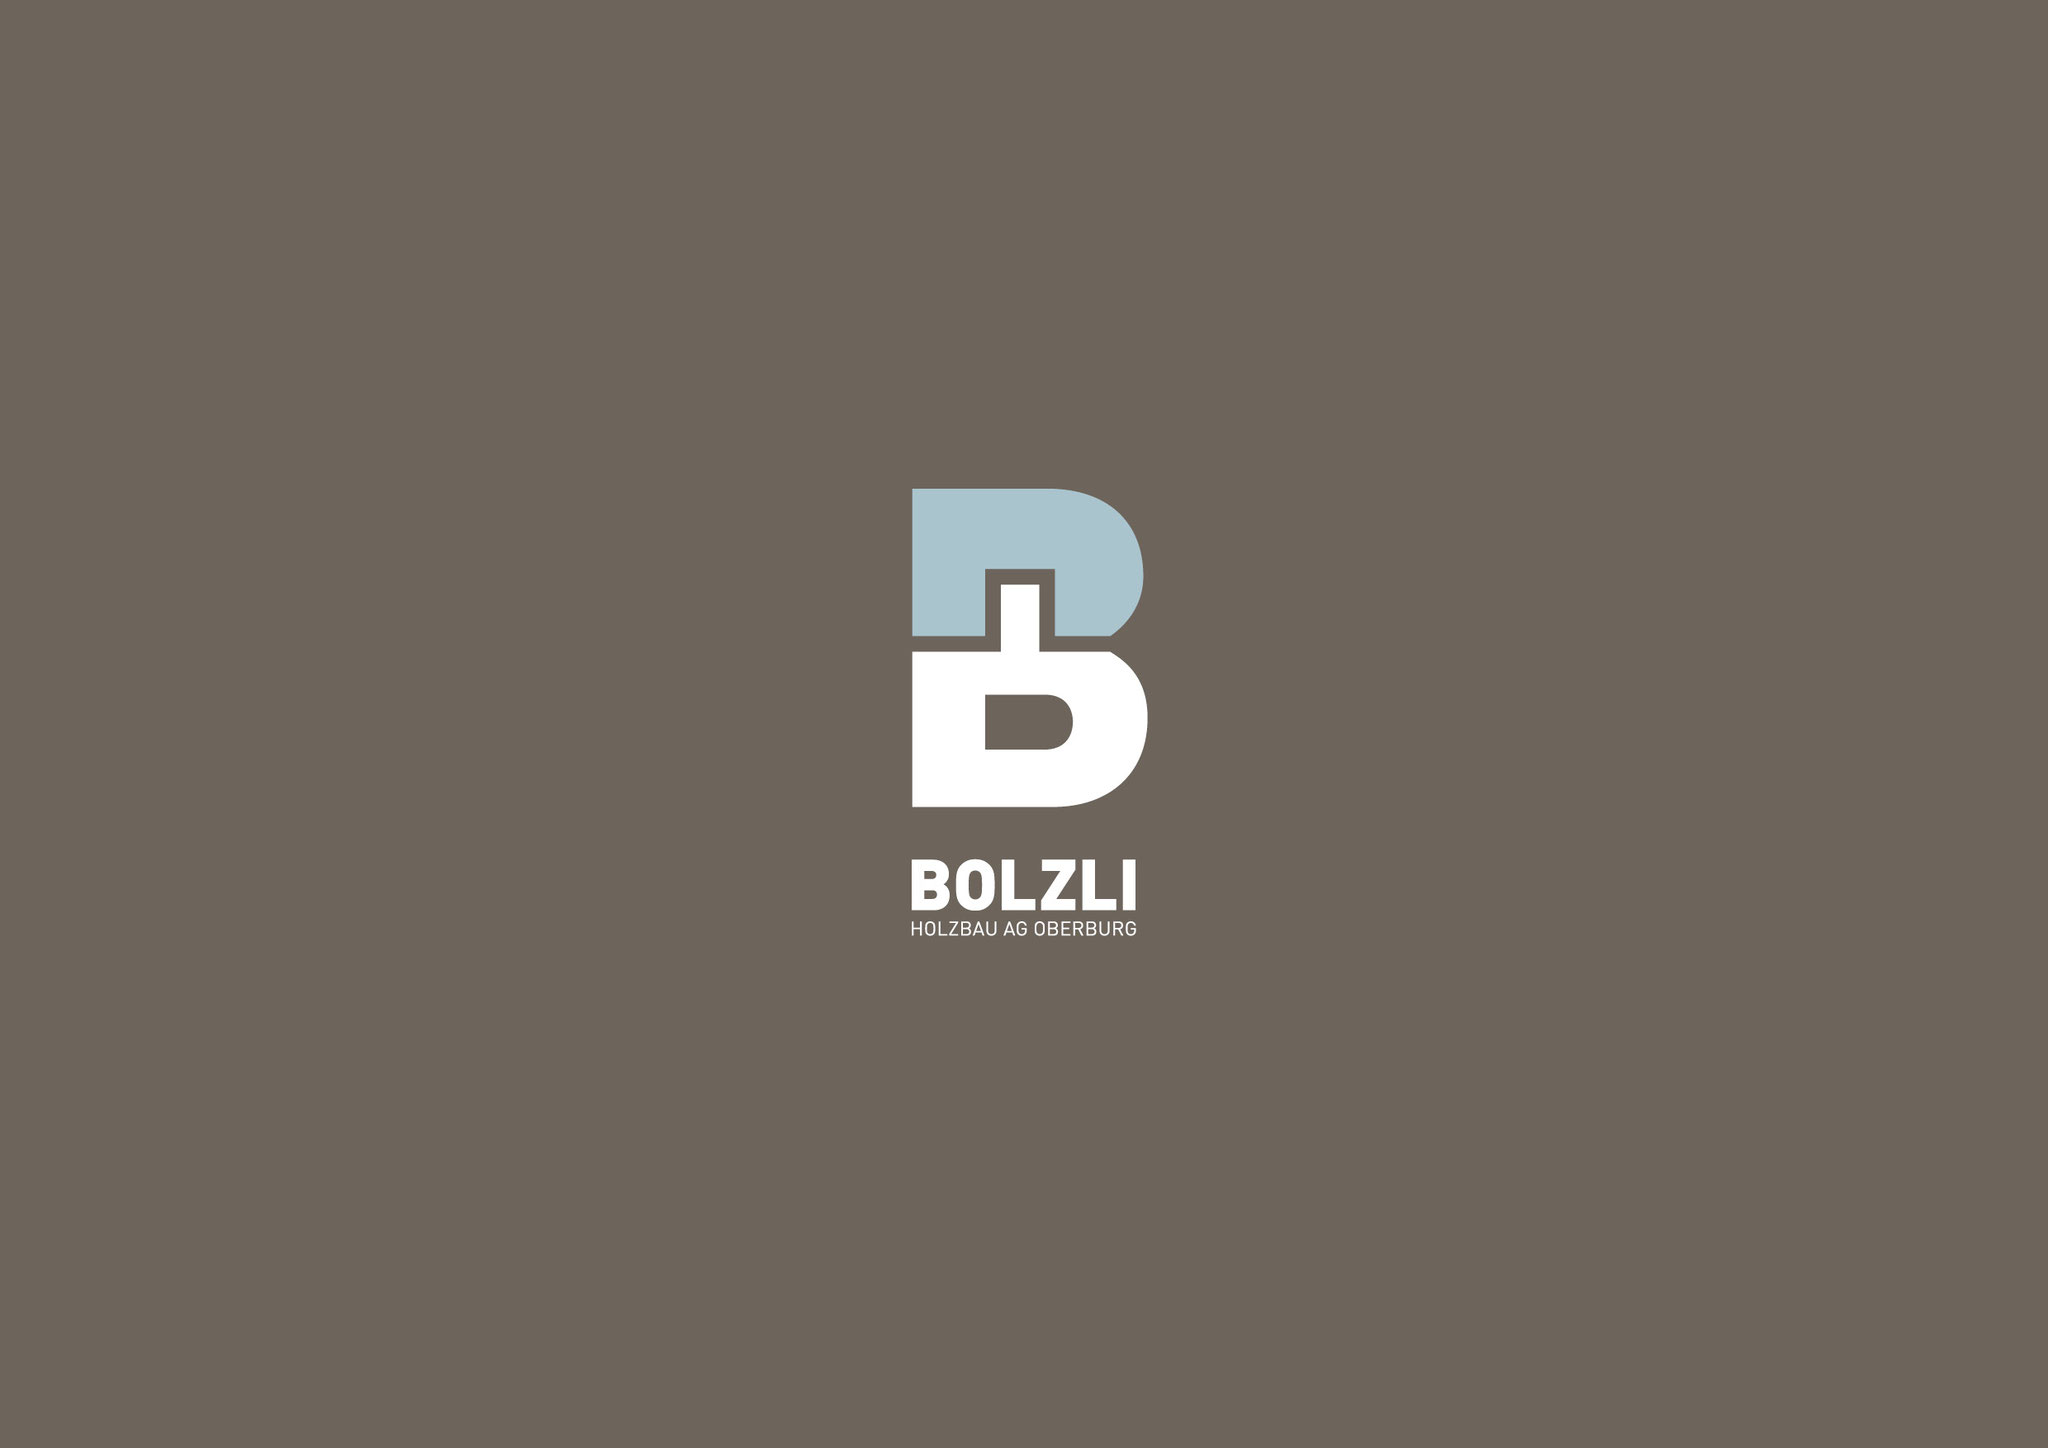 Corporate Design Bolzli Holzbau AG, Oberburg: Entwicklung Brand (Logo/Bildzeichen), Graphic Design by Lockedesign, Region Bern